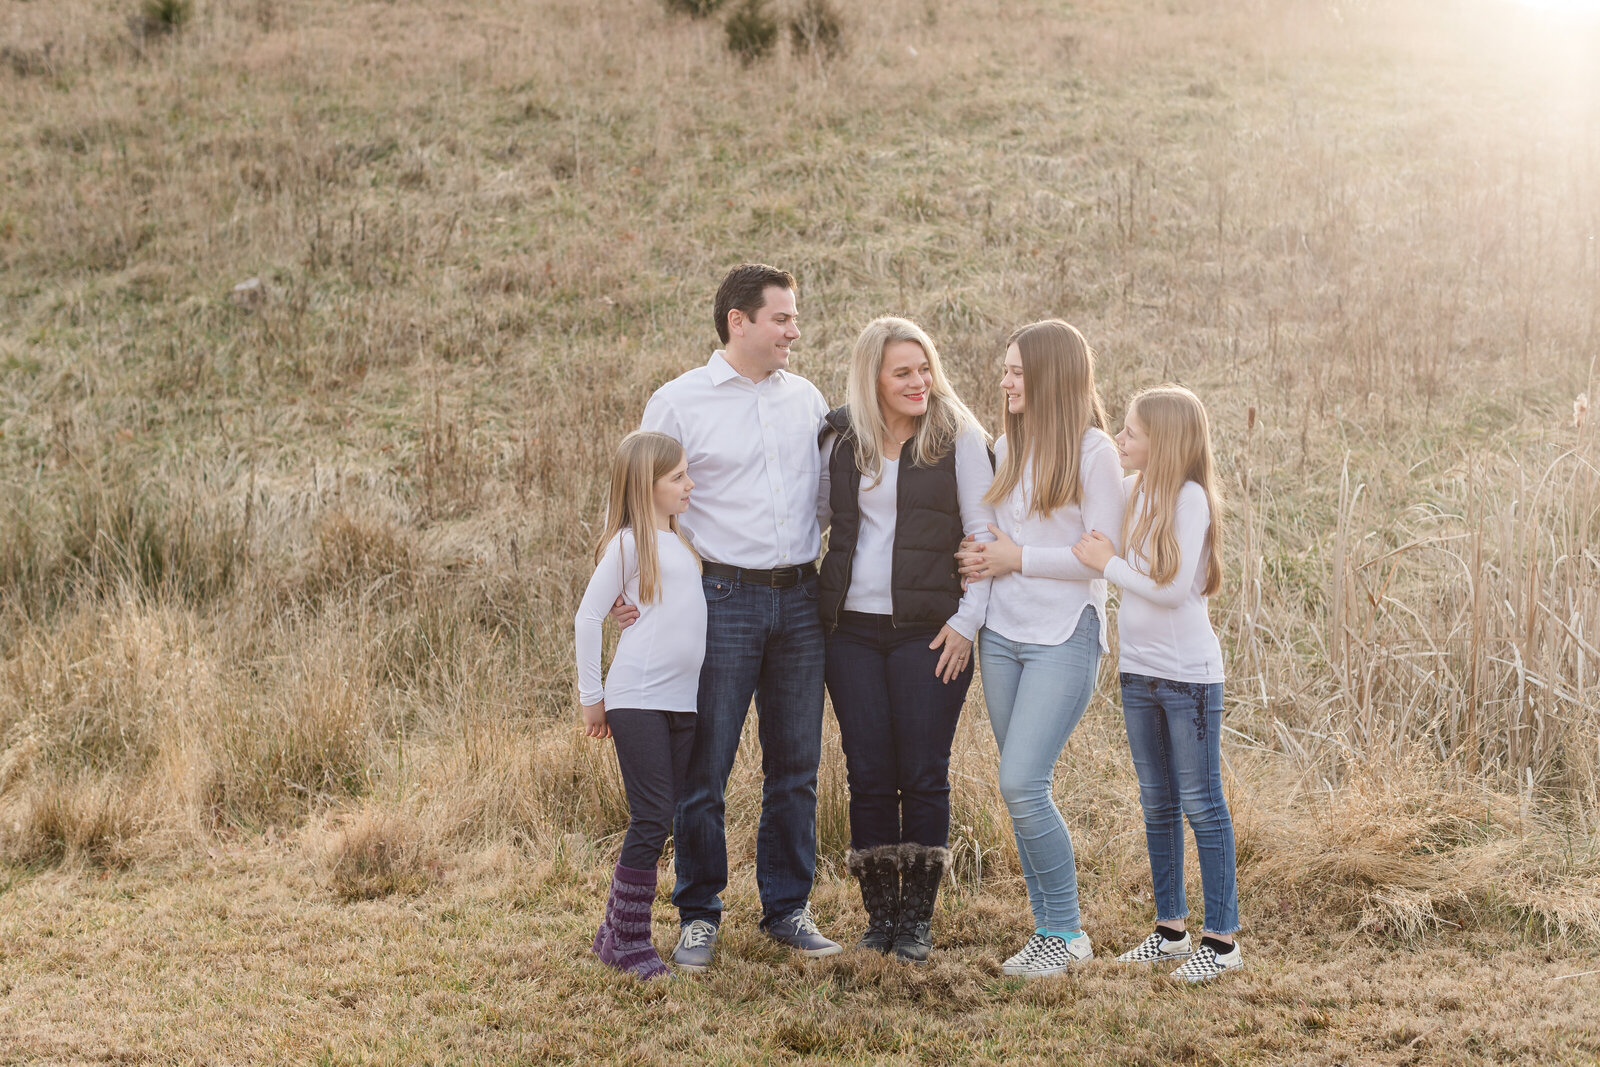 HolleyScheffelFamily12.28.19EDITS-0010